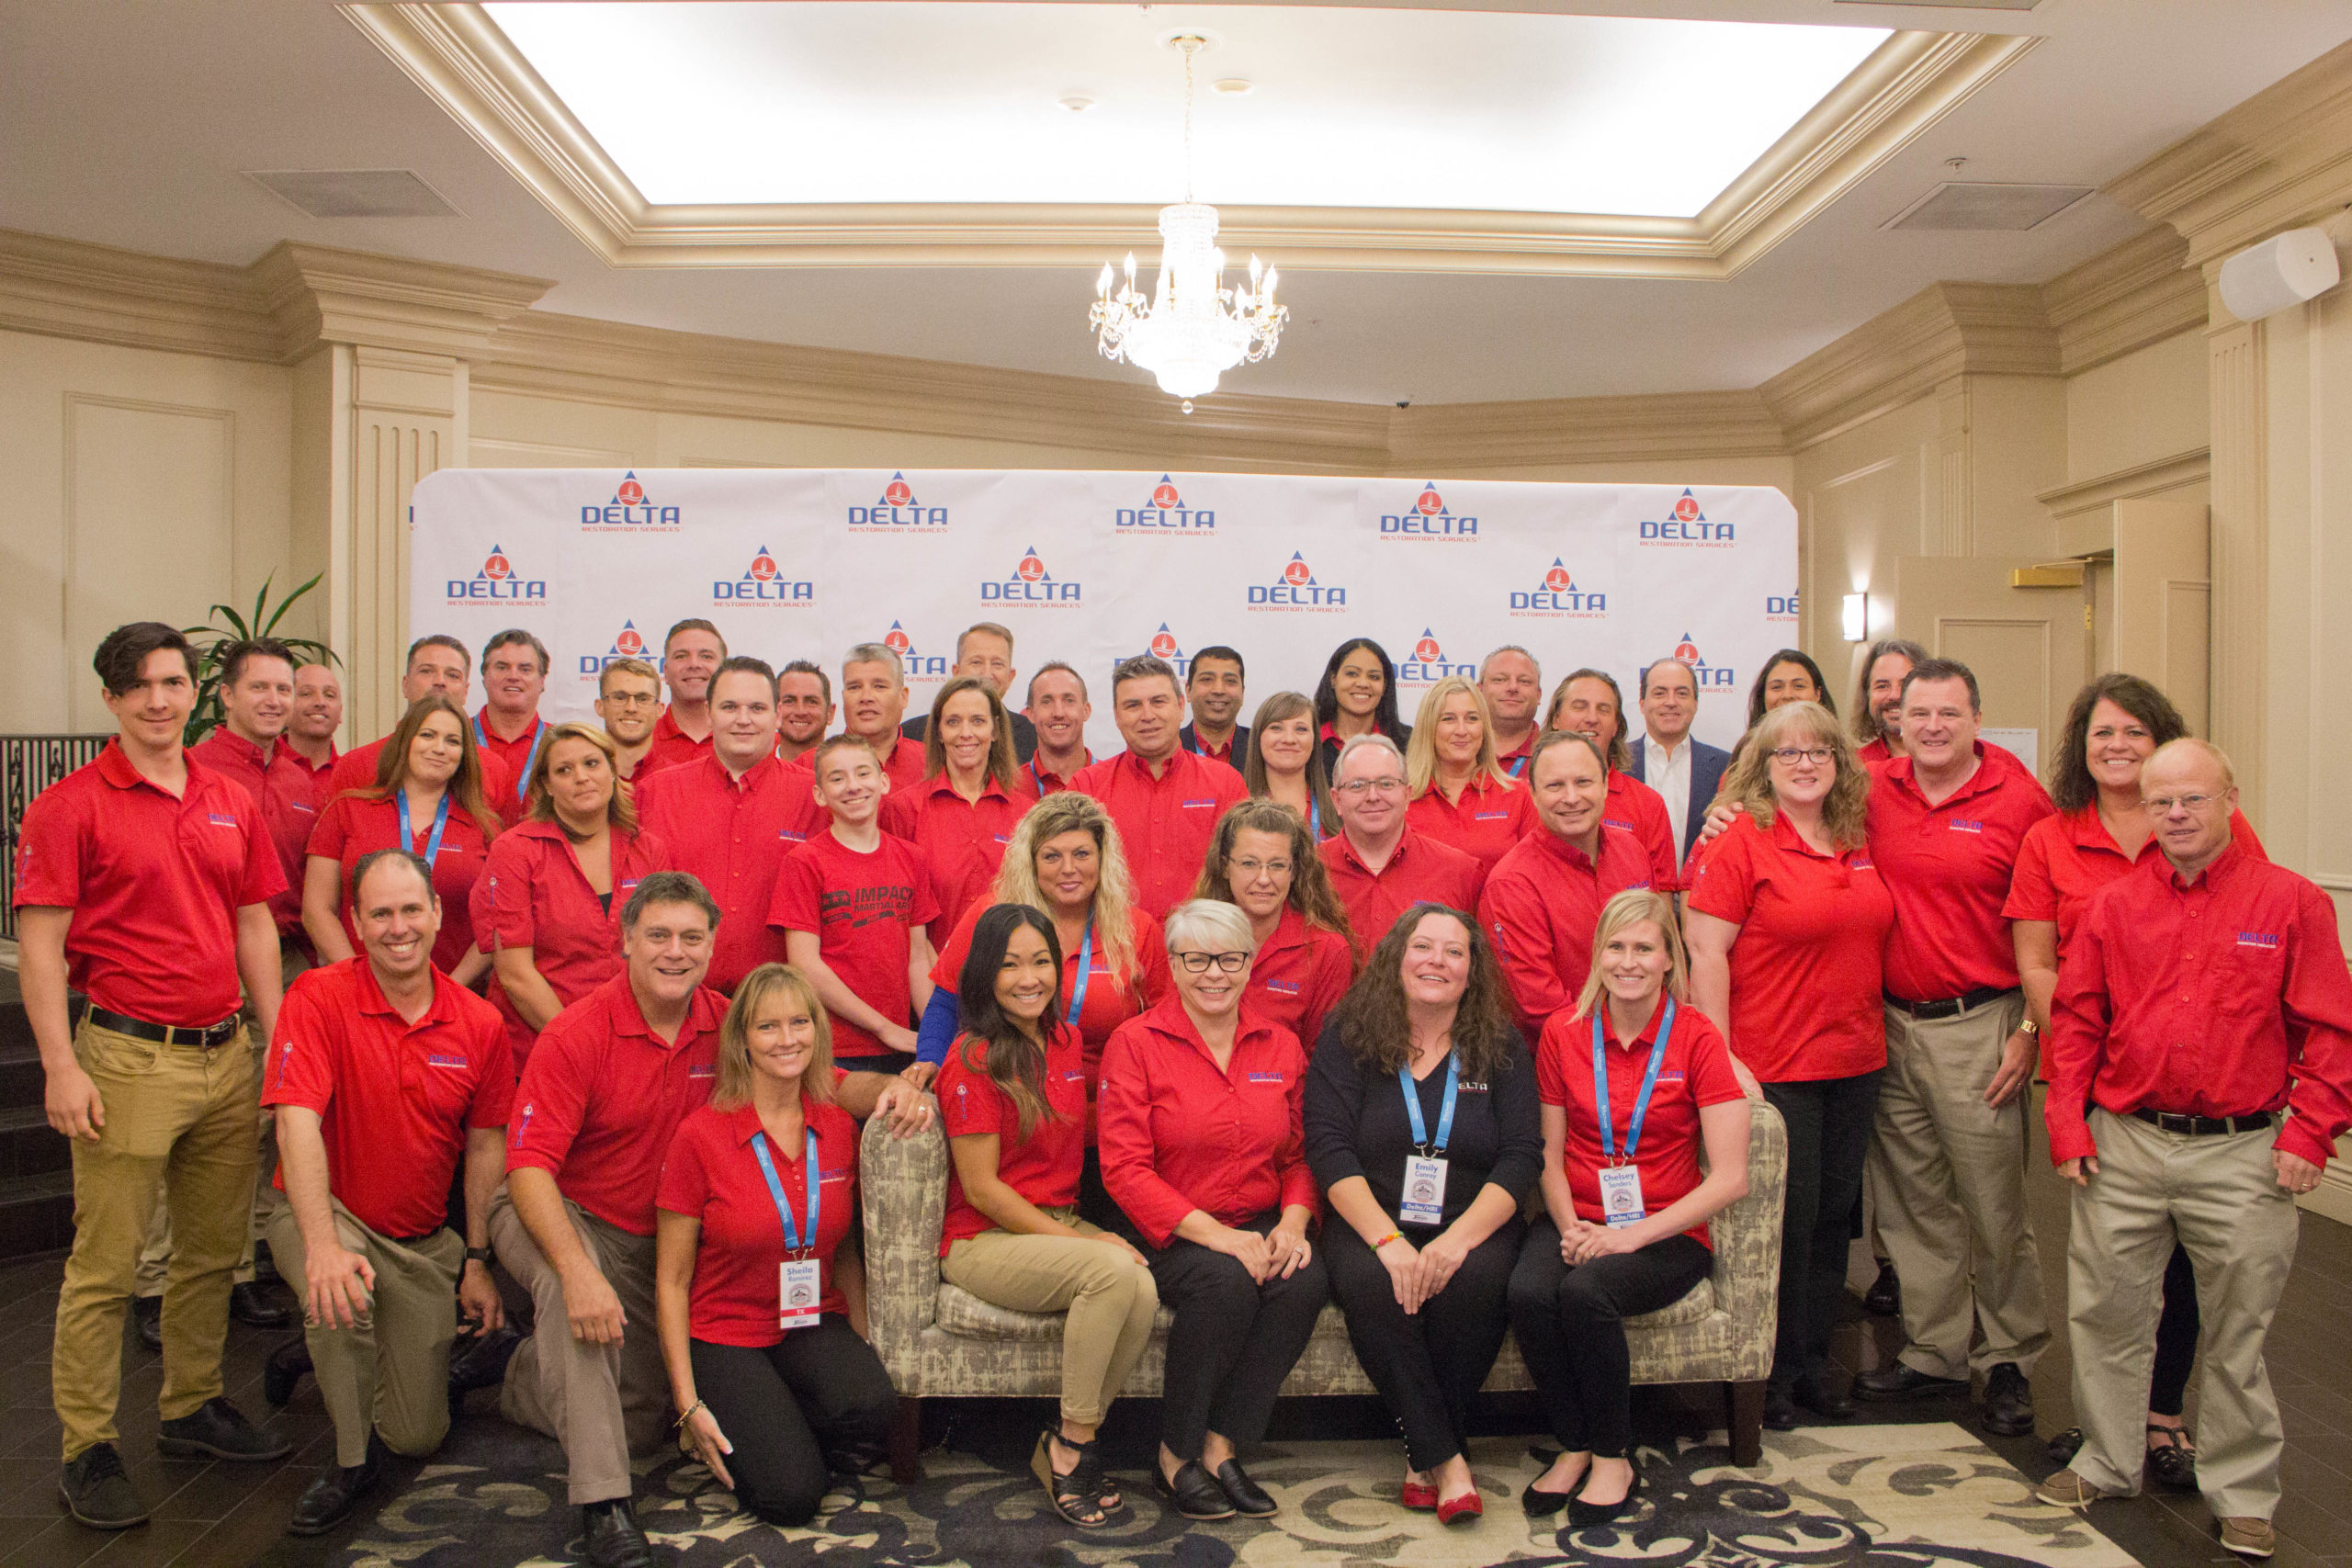 Delta franchise franchisees wearing a uniform in a group picture